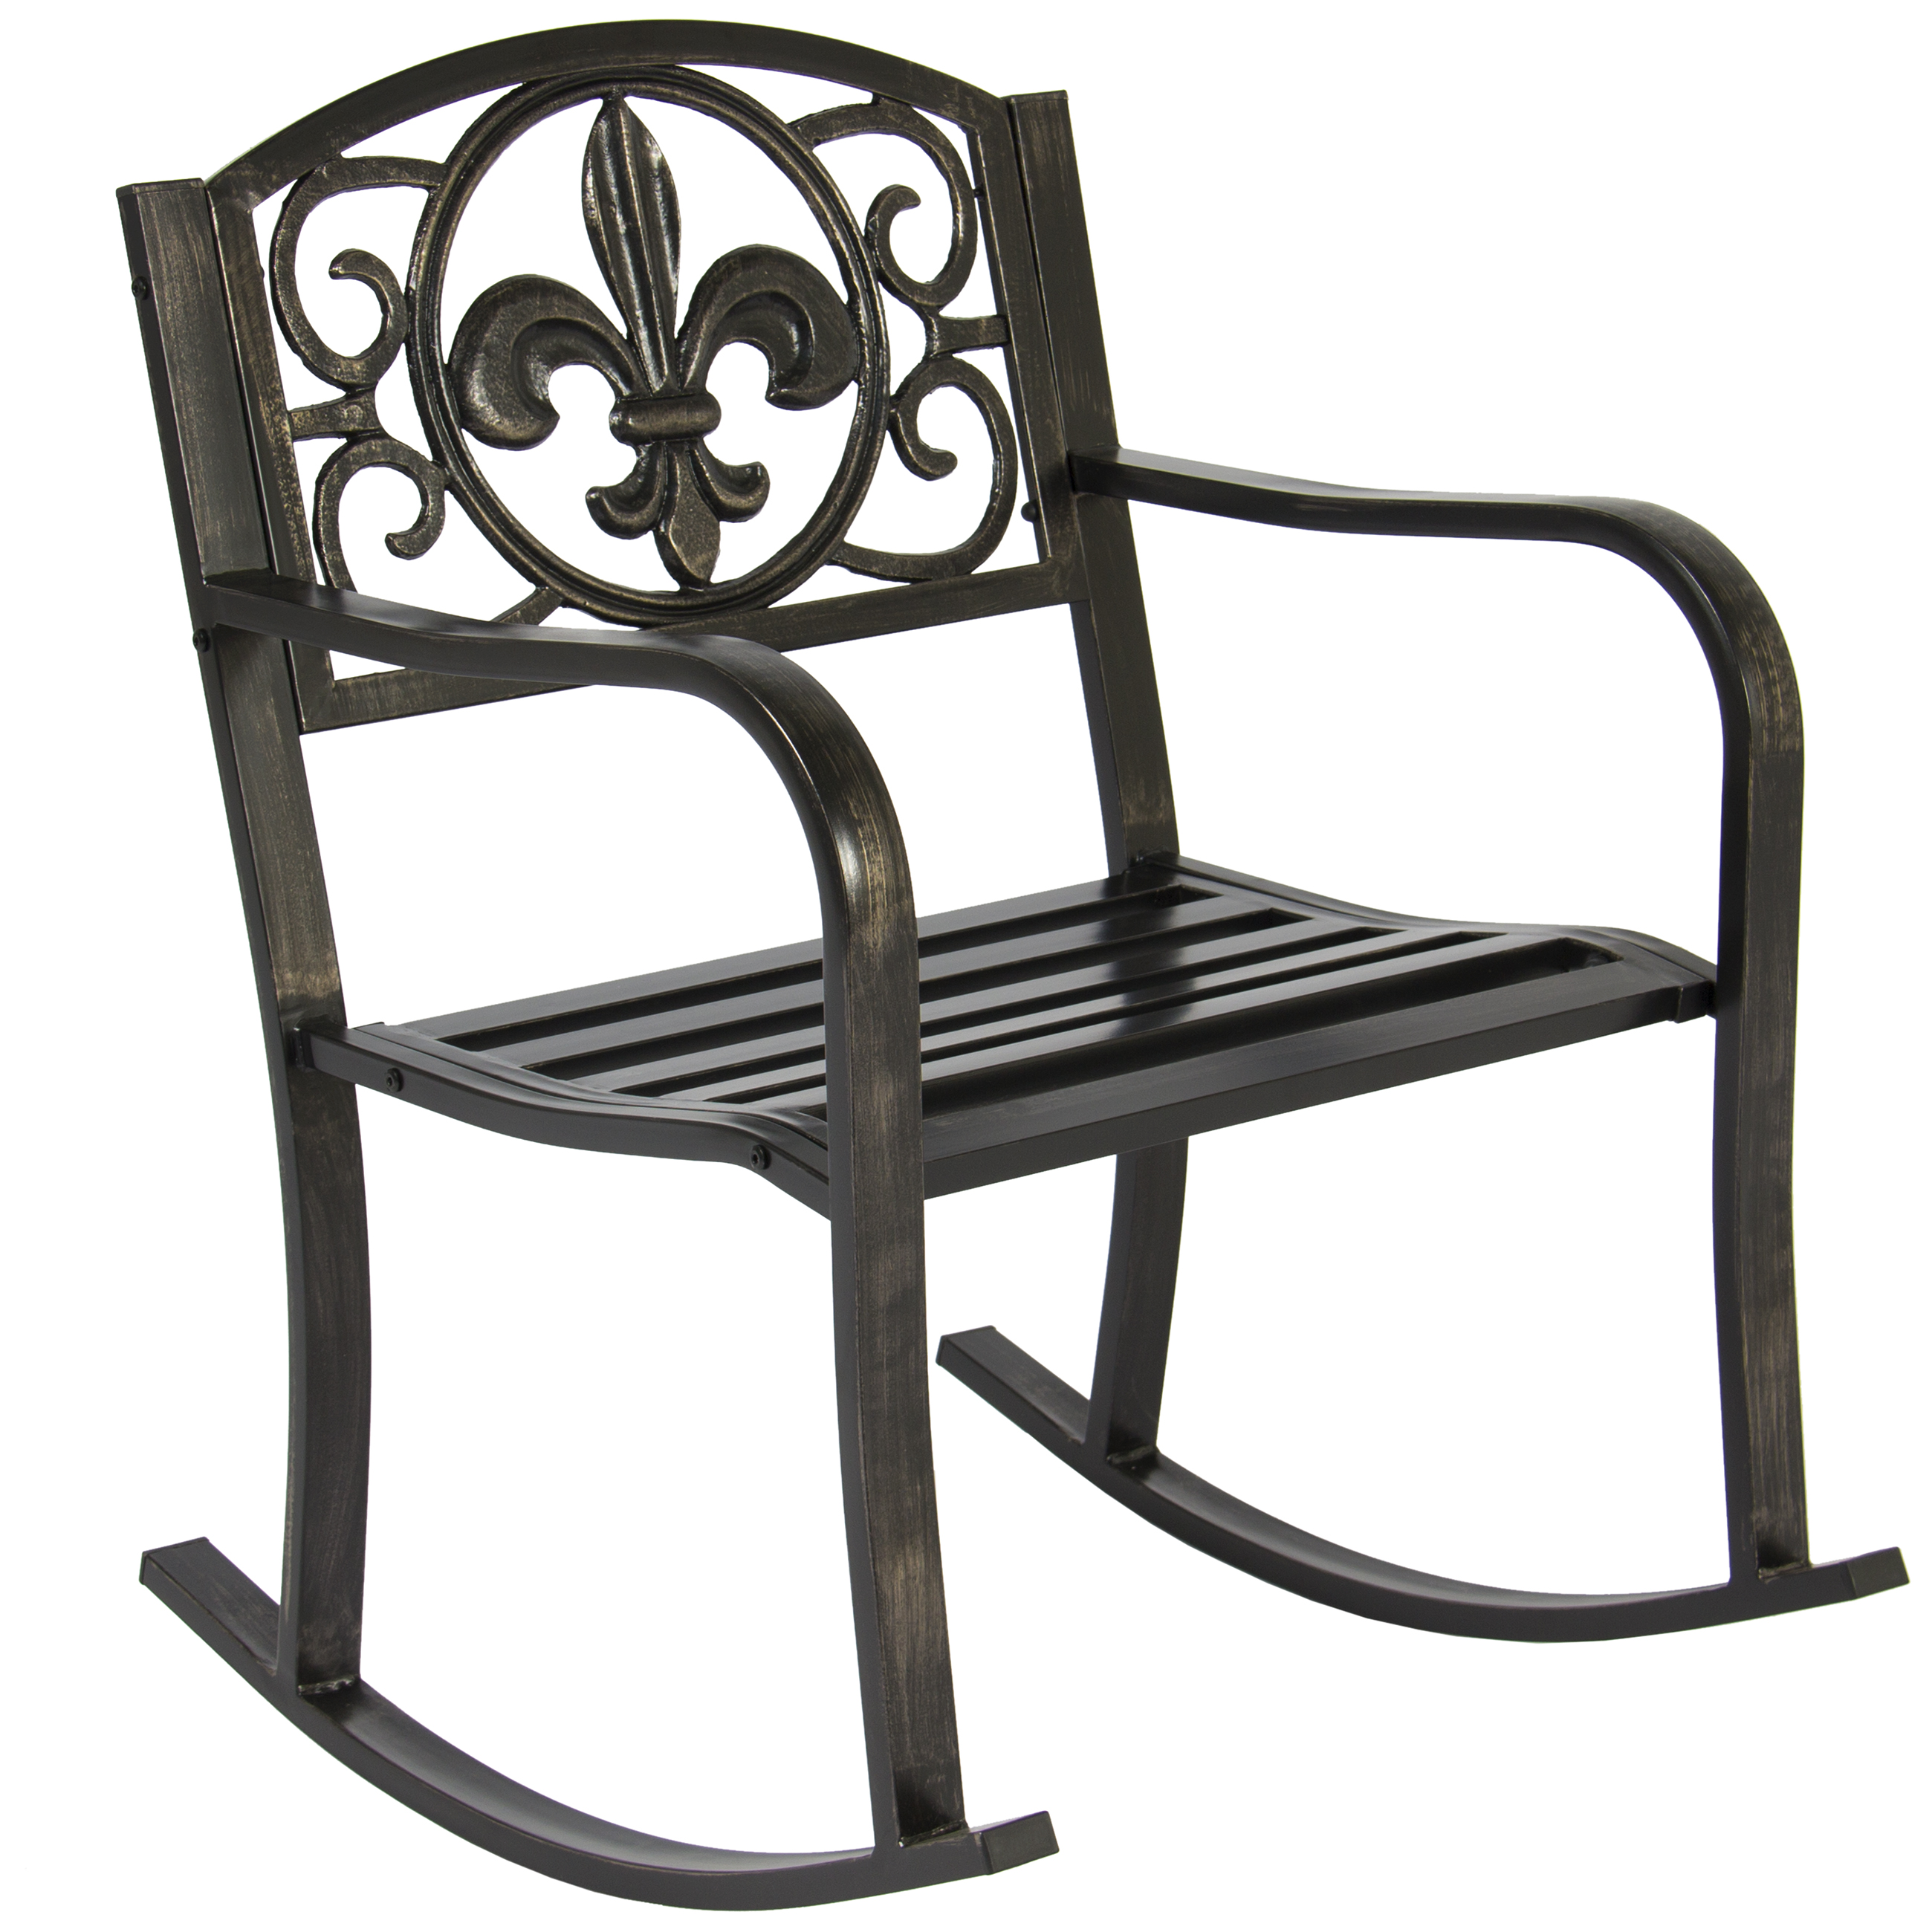 Picture of: Patio Seating Rocking Chairs Yaheetech Metal Patio Rocking Chair Rolling Chair Heavy Duty Rocking Chair Front Porch Outdoor Patio Rocker Seat Cart Bronze Patio Furniture Accessories Lifestyletradie Com Au